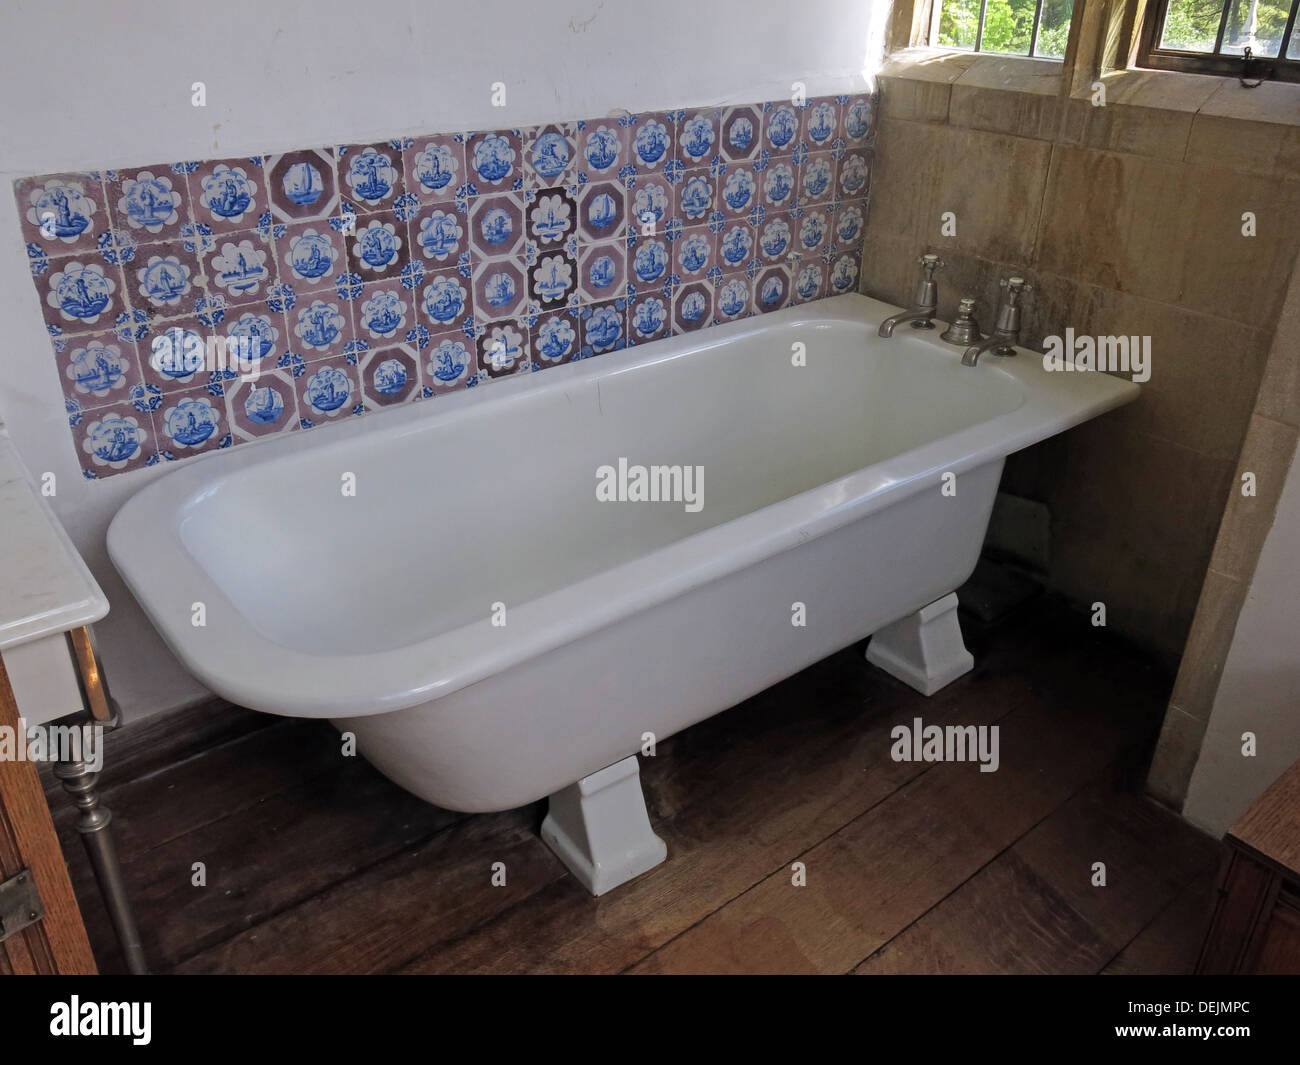 Barrington,Court,Ilminster,Somerset,UK,TA19,0NQ,england,english,property,properties,places,to,visit,for,tourists,tourist,traveller,travelers,travelers,attraction,attractions,garden,interior,baths,tape,old,antique,hot,cold,plug,sink,sinks,white,vitreous,vitrious,enamel,tiles,tile,old,plumbing,Gotonysmith,enamal,SW,south,west,nr,near,Yeovil,Buy Pictures of,Buy Images Of